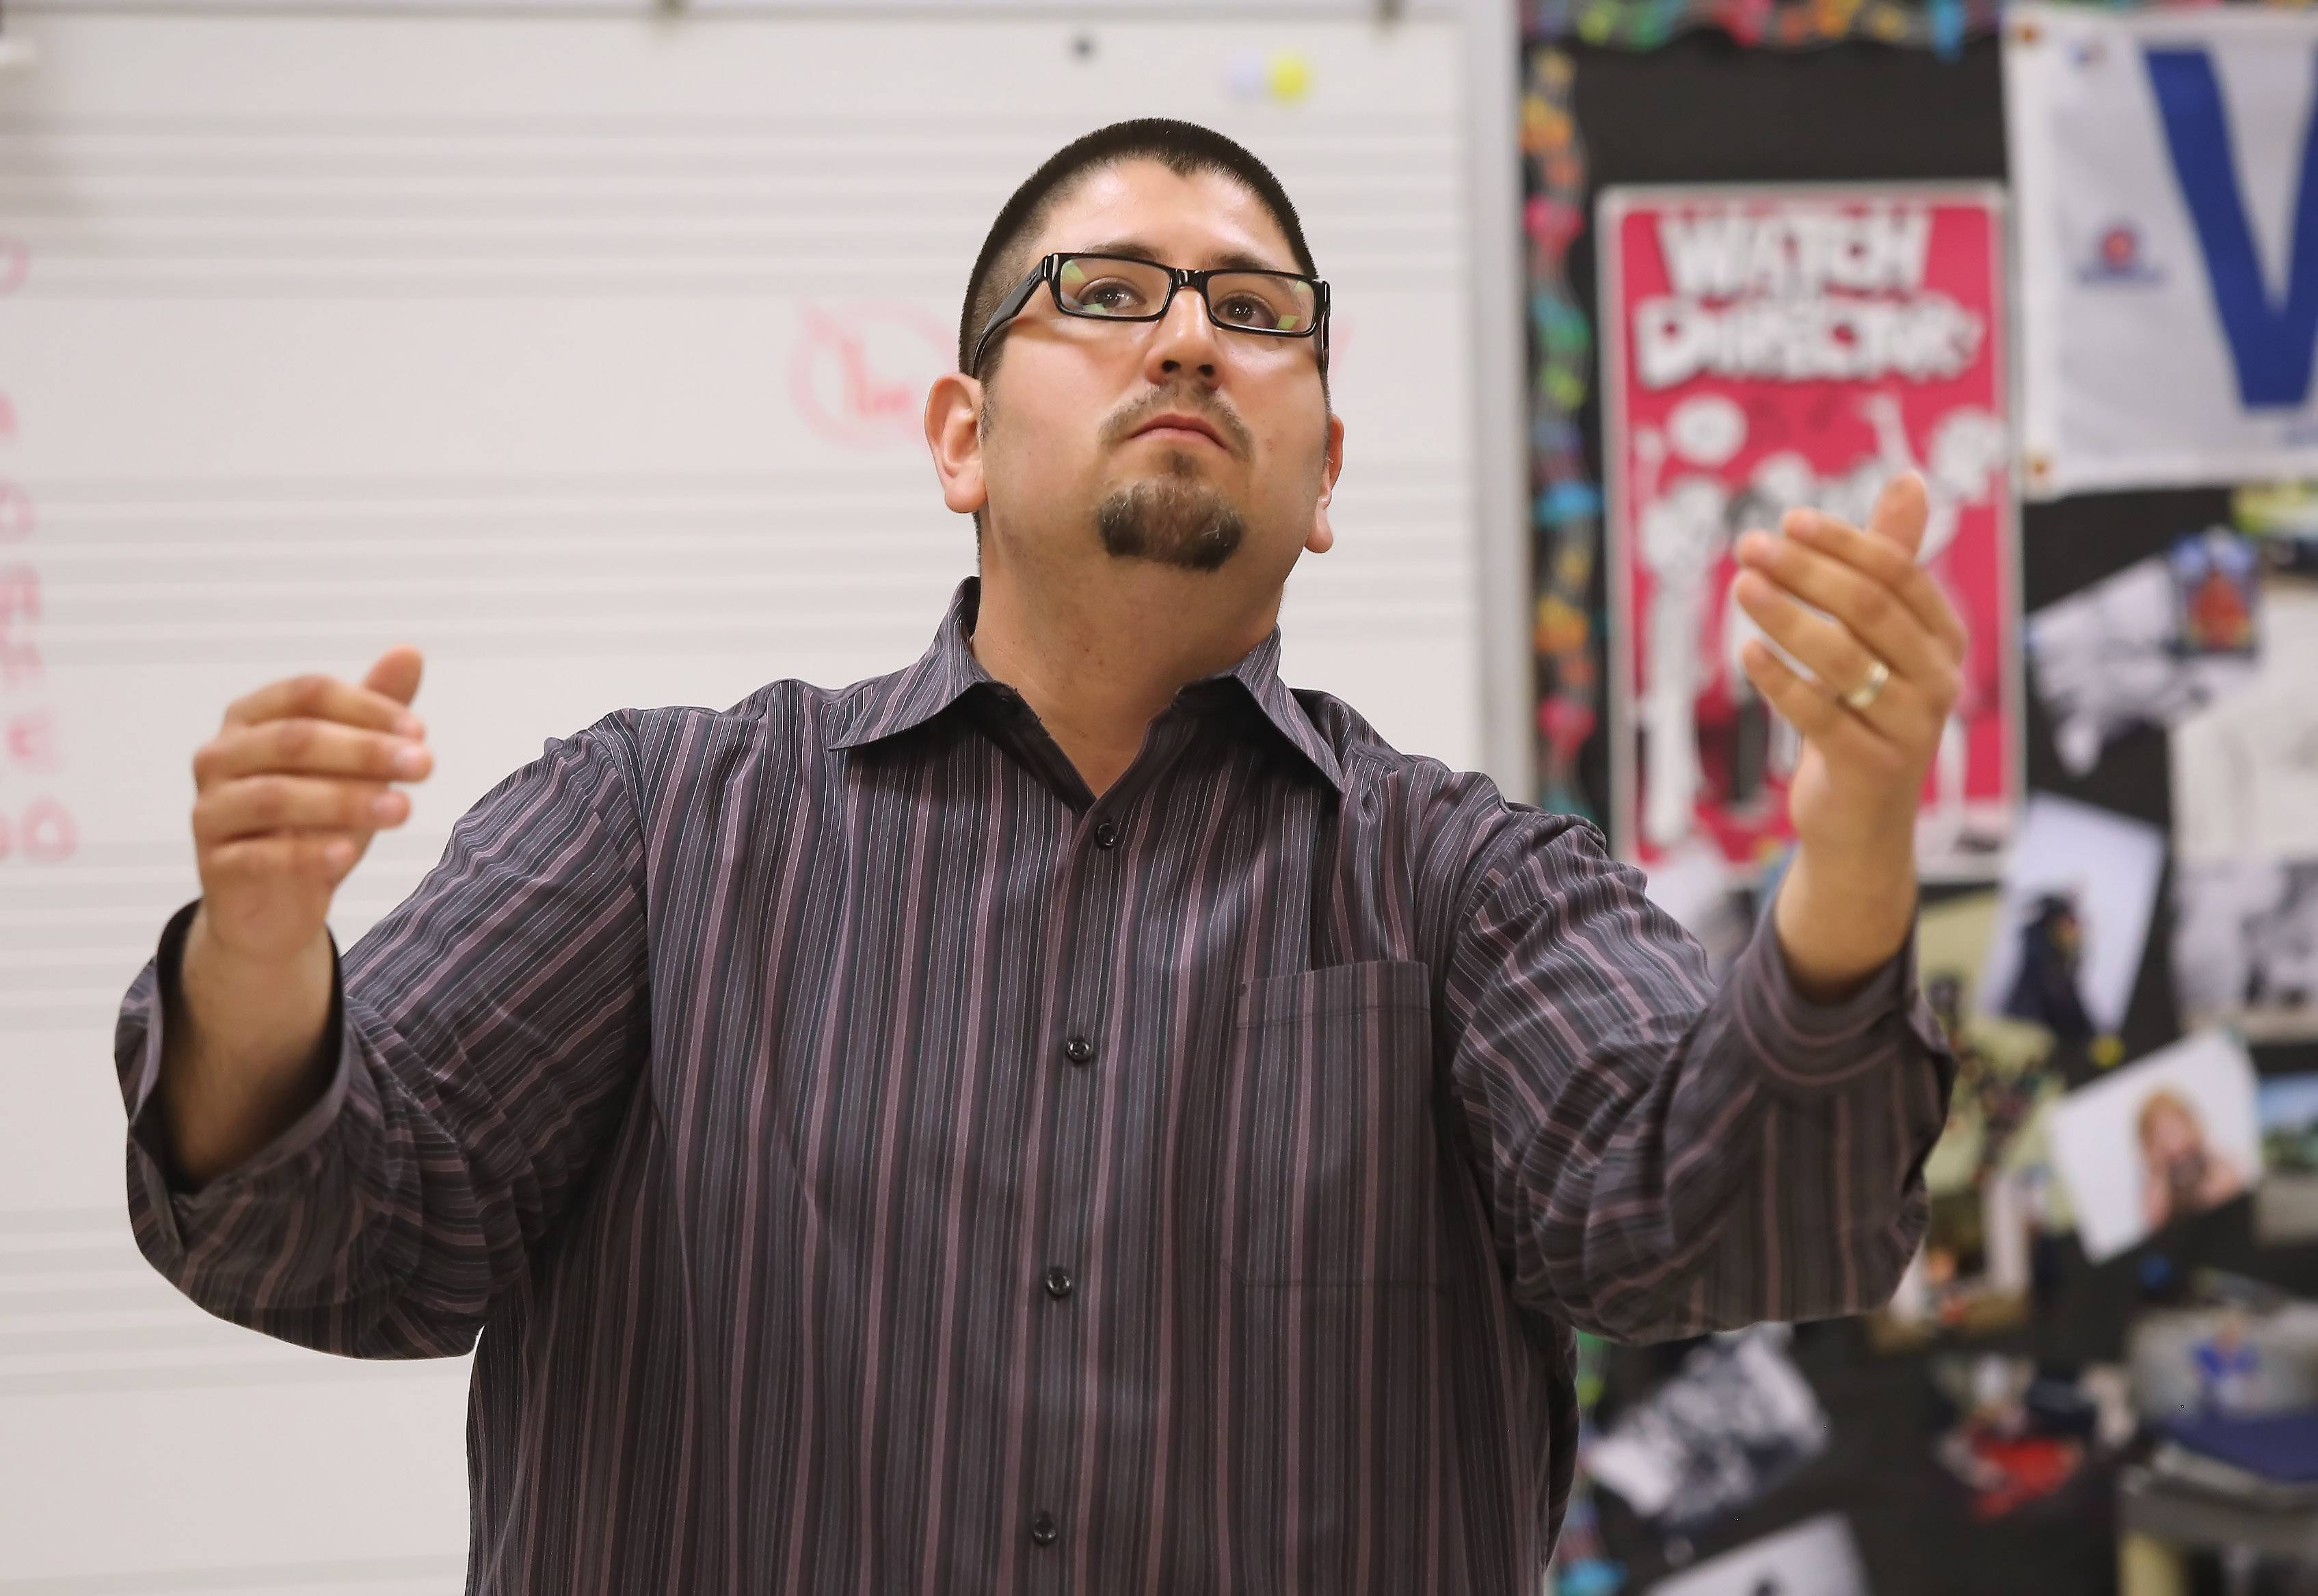 Round Lake Middle School teacher Javier Diaz isn't short on enthusiasm when conducting his choir students.